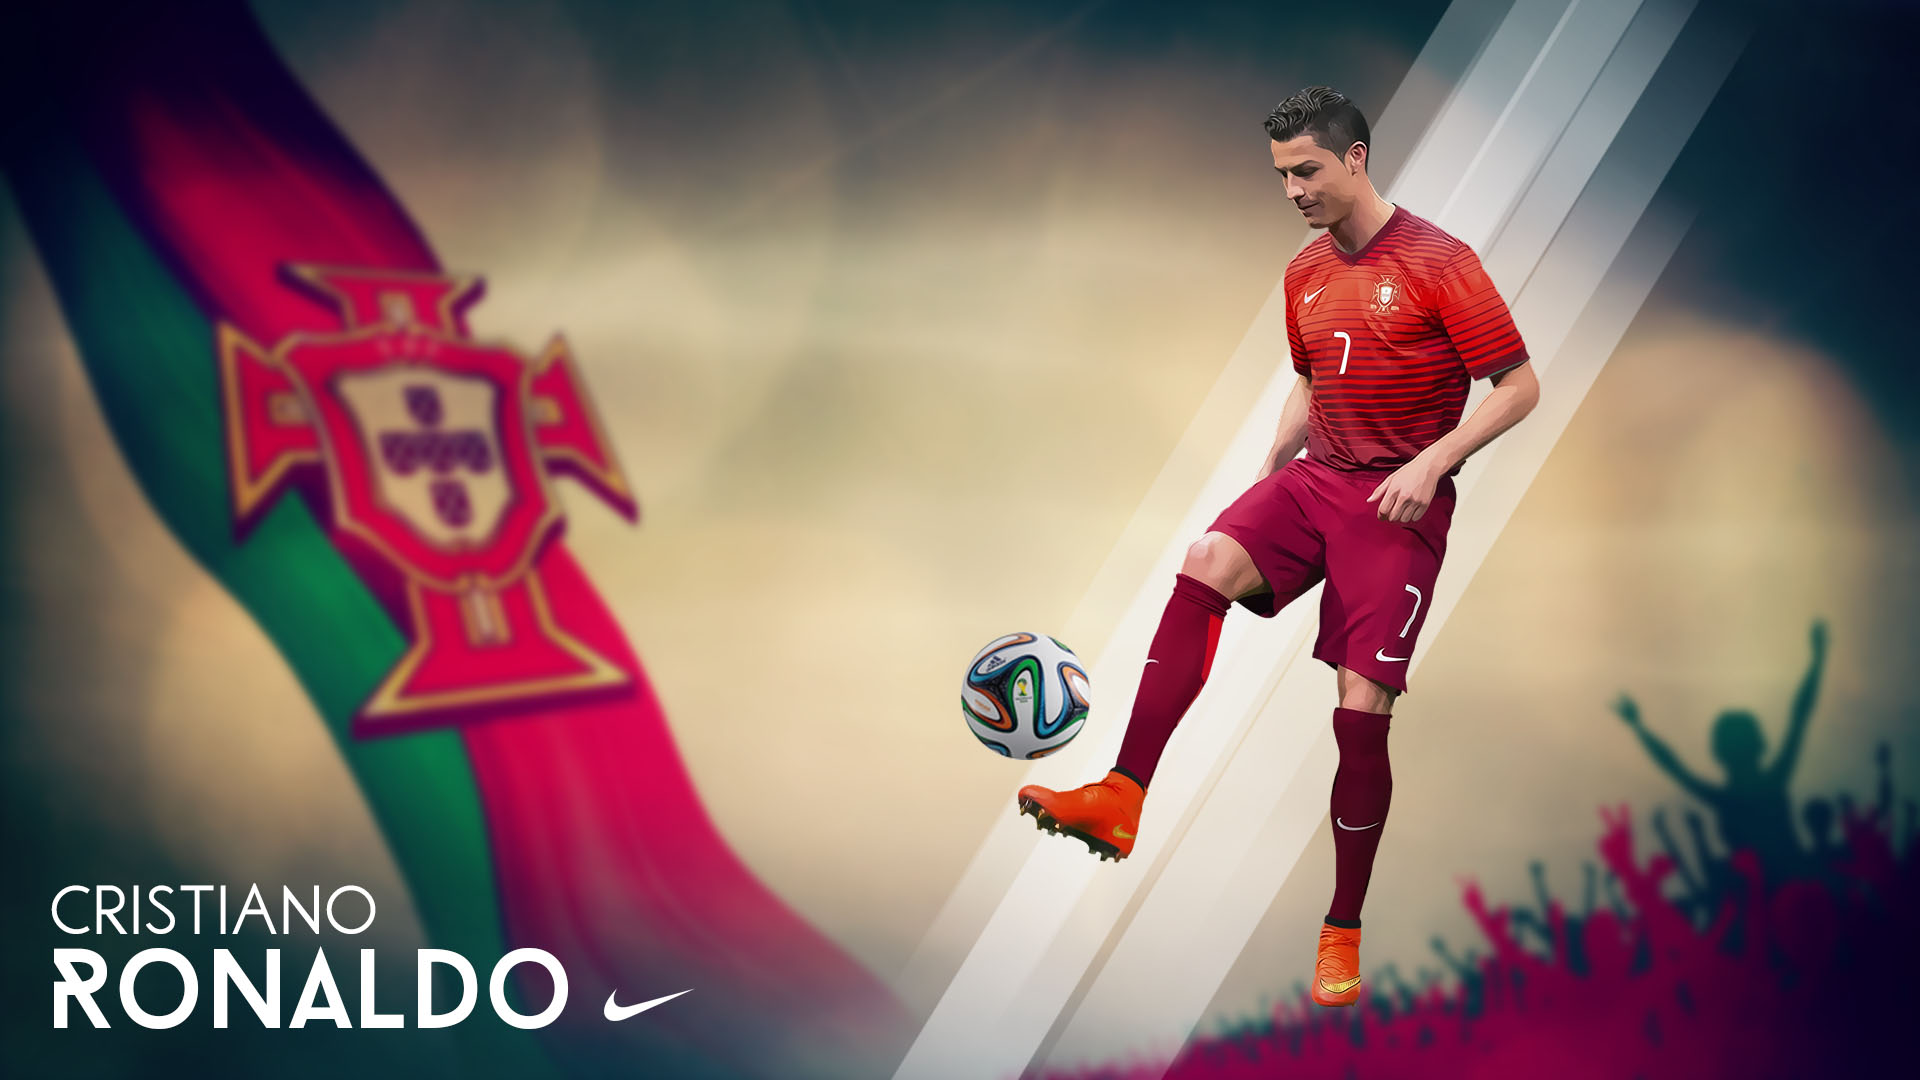 Collection of C Ronaldo Wallpaper on HDWallpapers 1920x1080